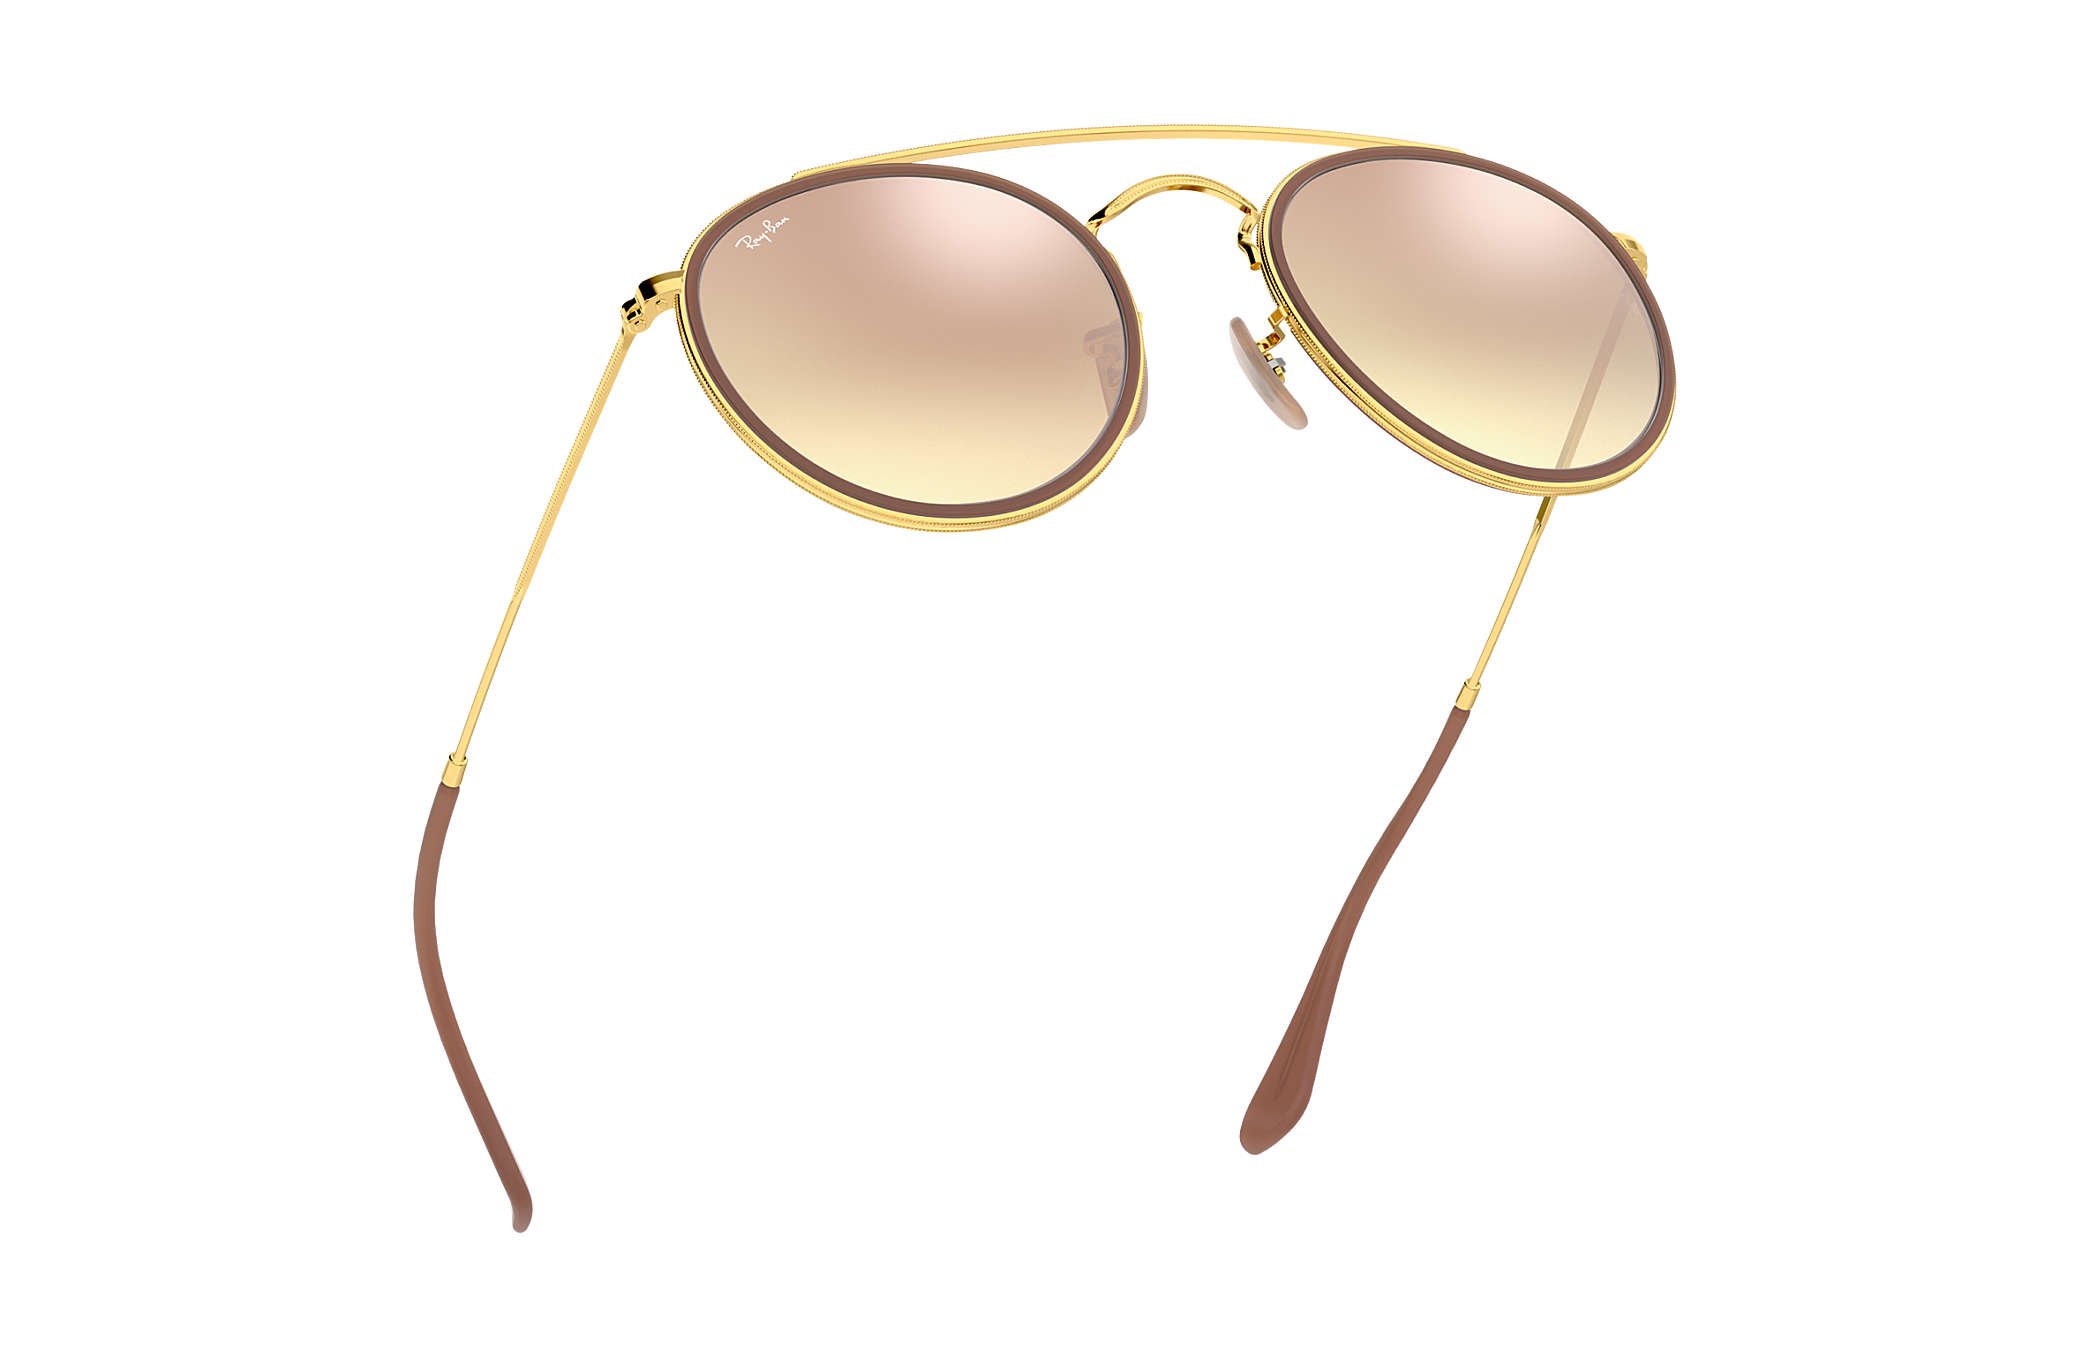 a6b78210a20 Ray-Ban Round Double Bridge RB3647N Ouro - Metal - Lentes Cobre ...